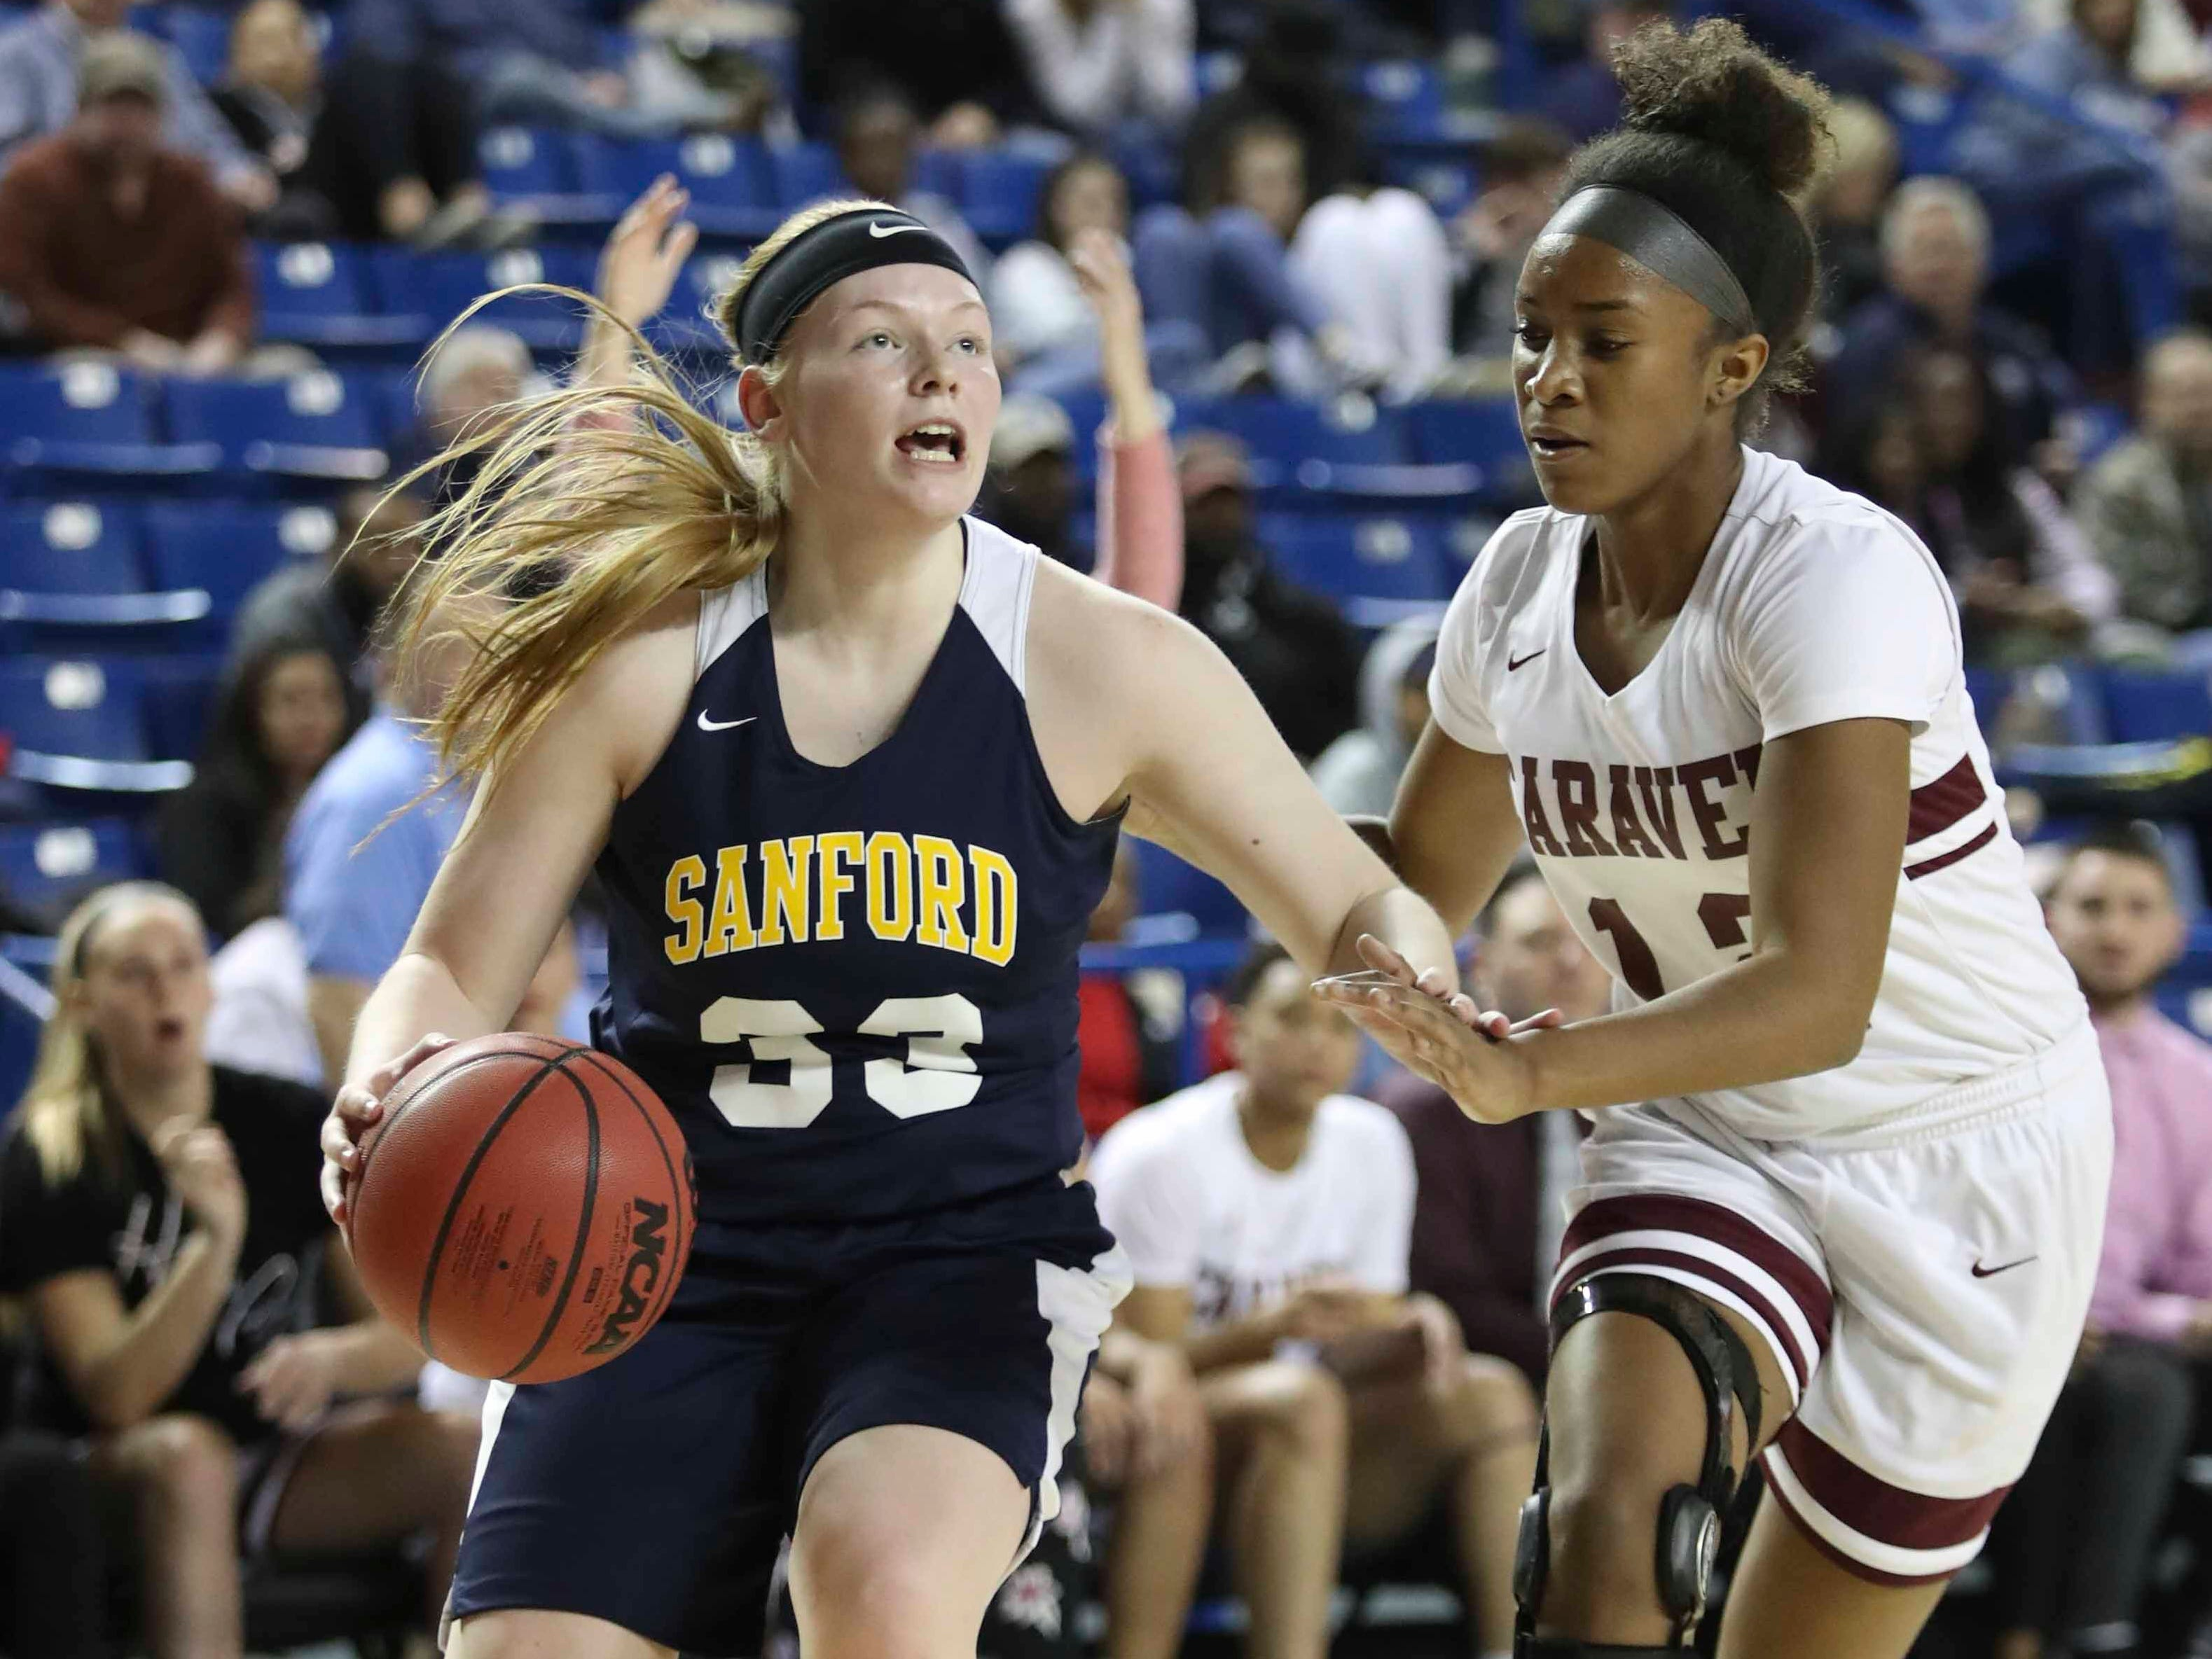 Sanford's Olivia Tucker (left) moves against Caravel's Taylor Wilkins in the first half of the DIAA state tournament championship game at the Bob Carpenter Center Friday.